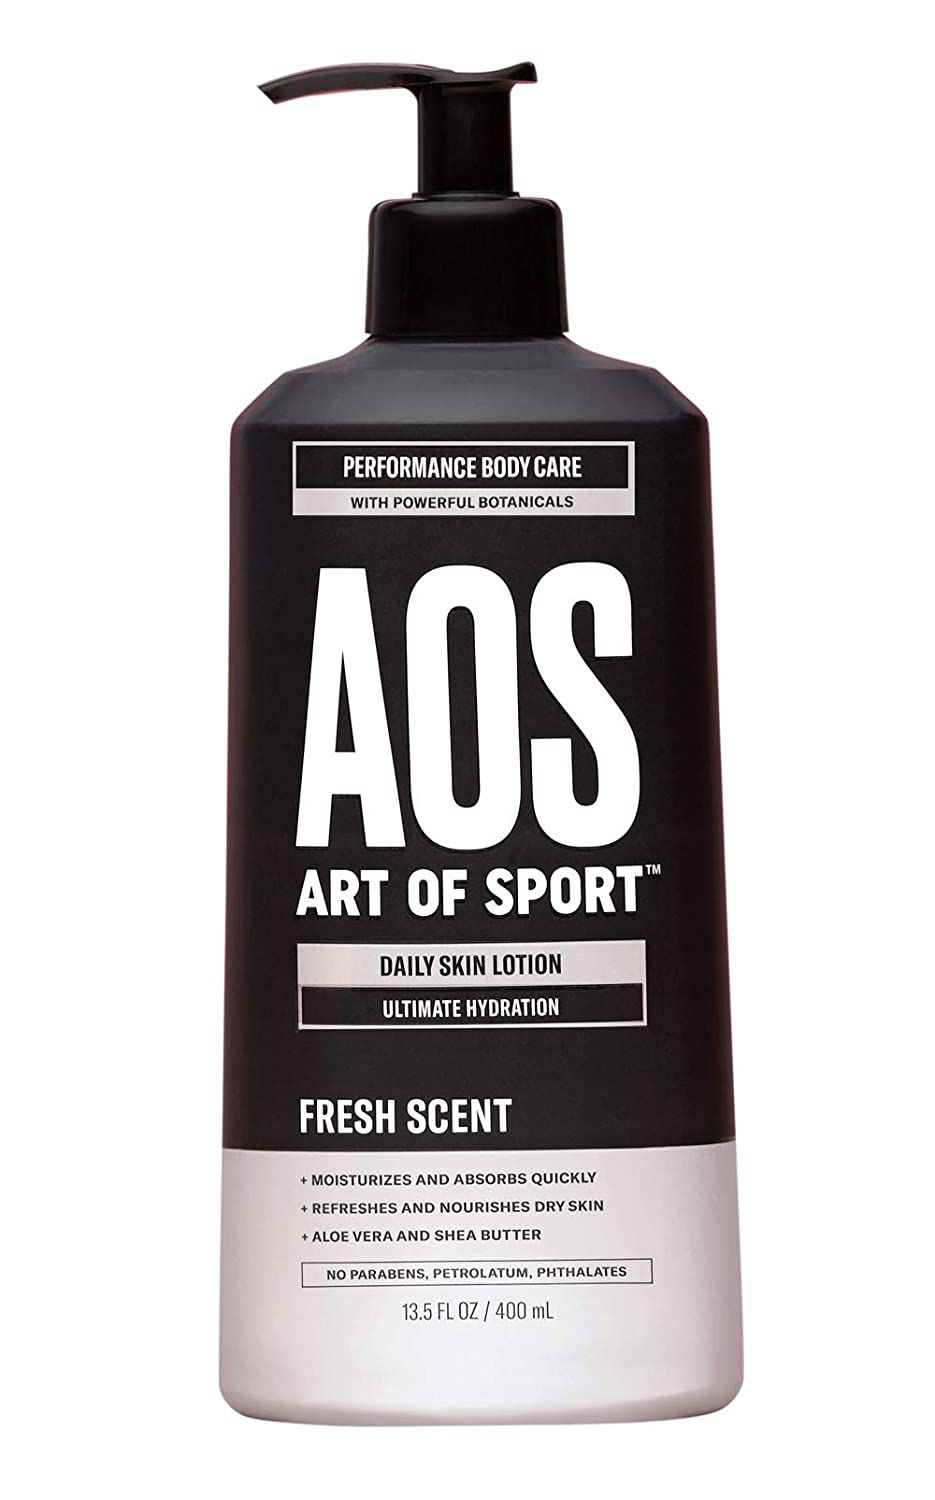 Art of Sport Daily Skin Lotion